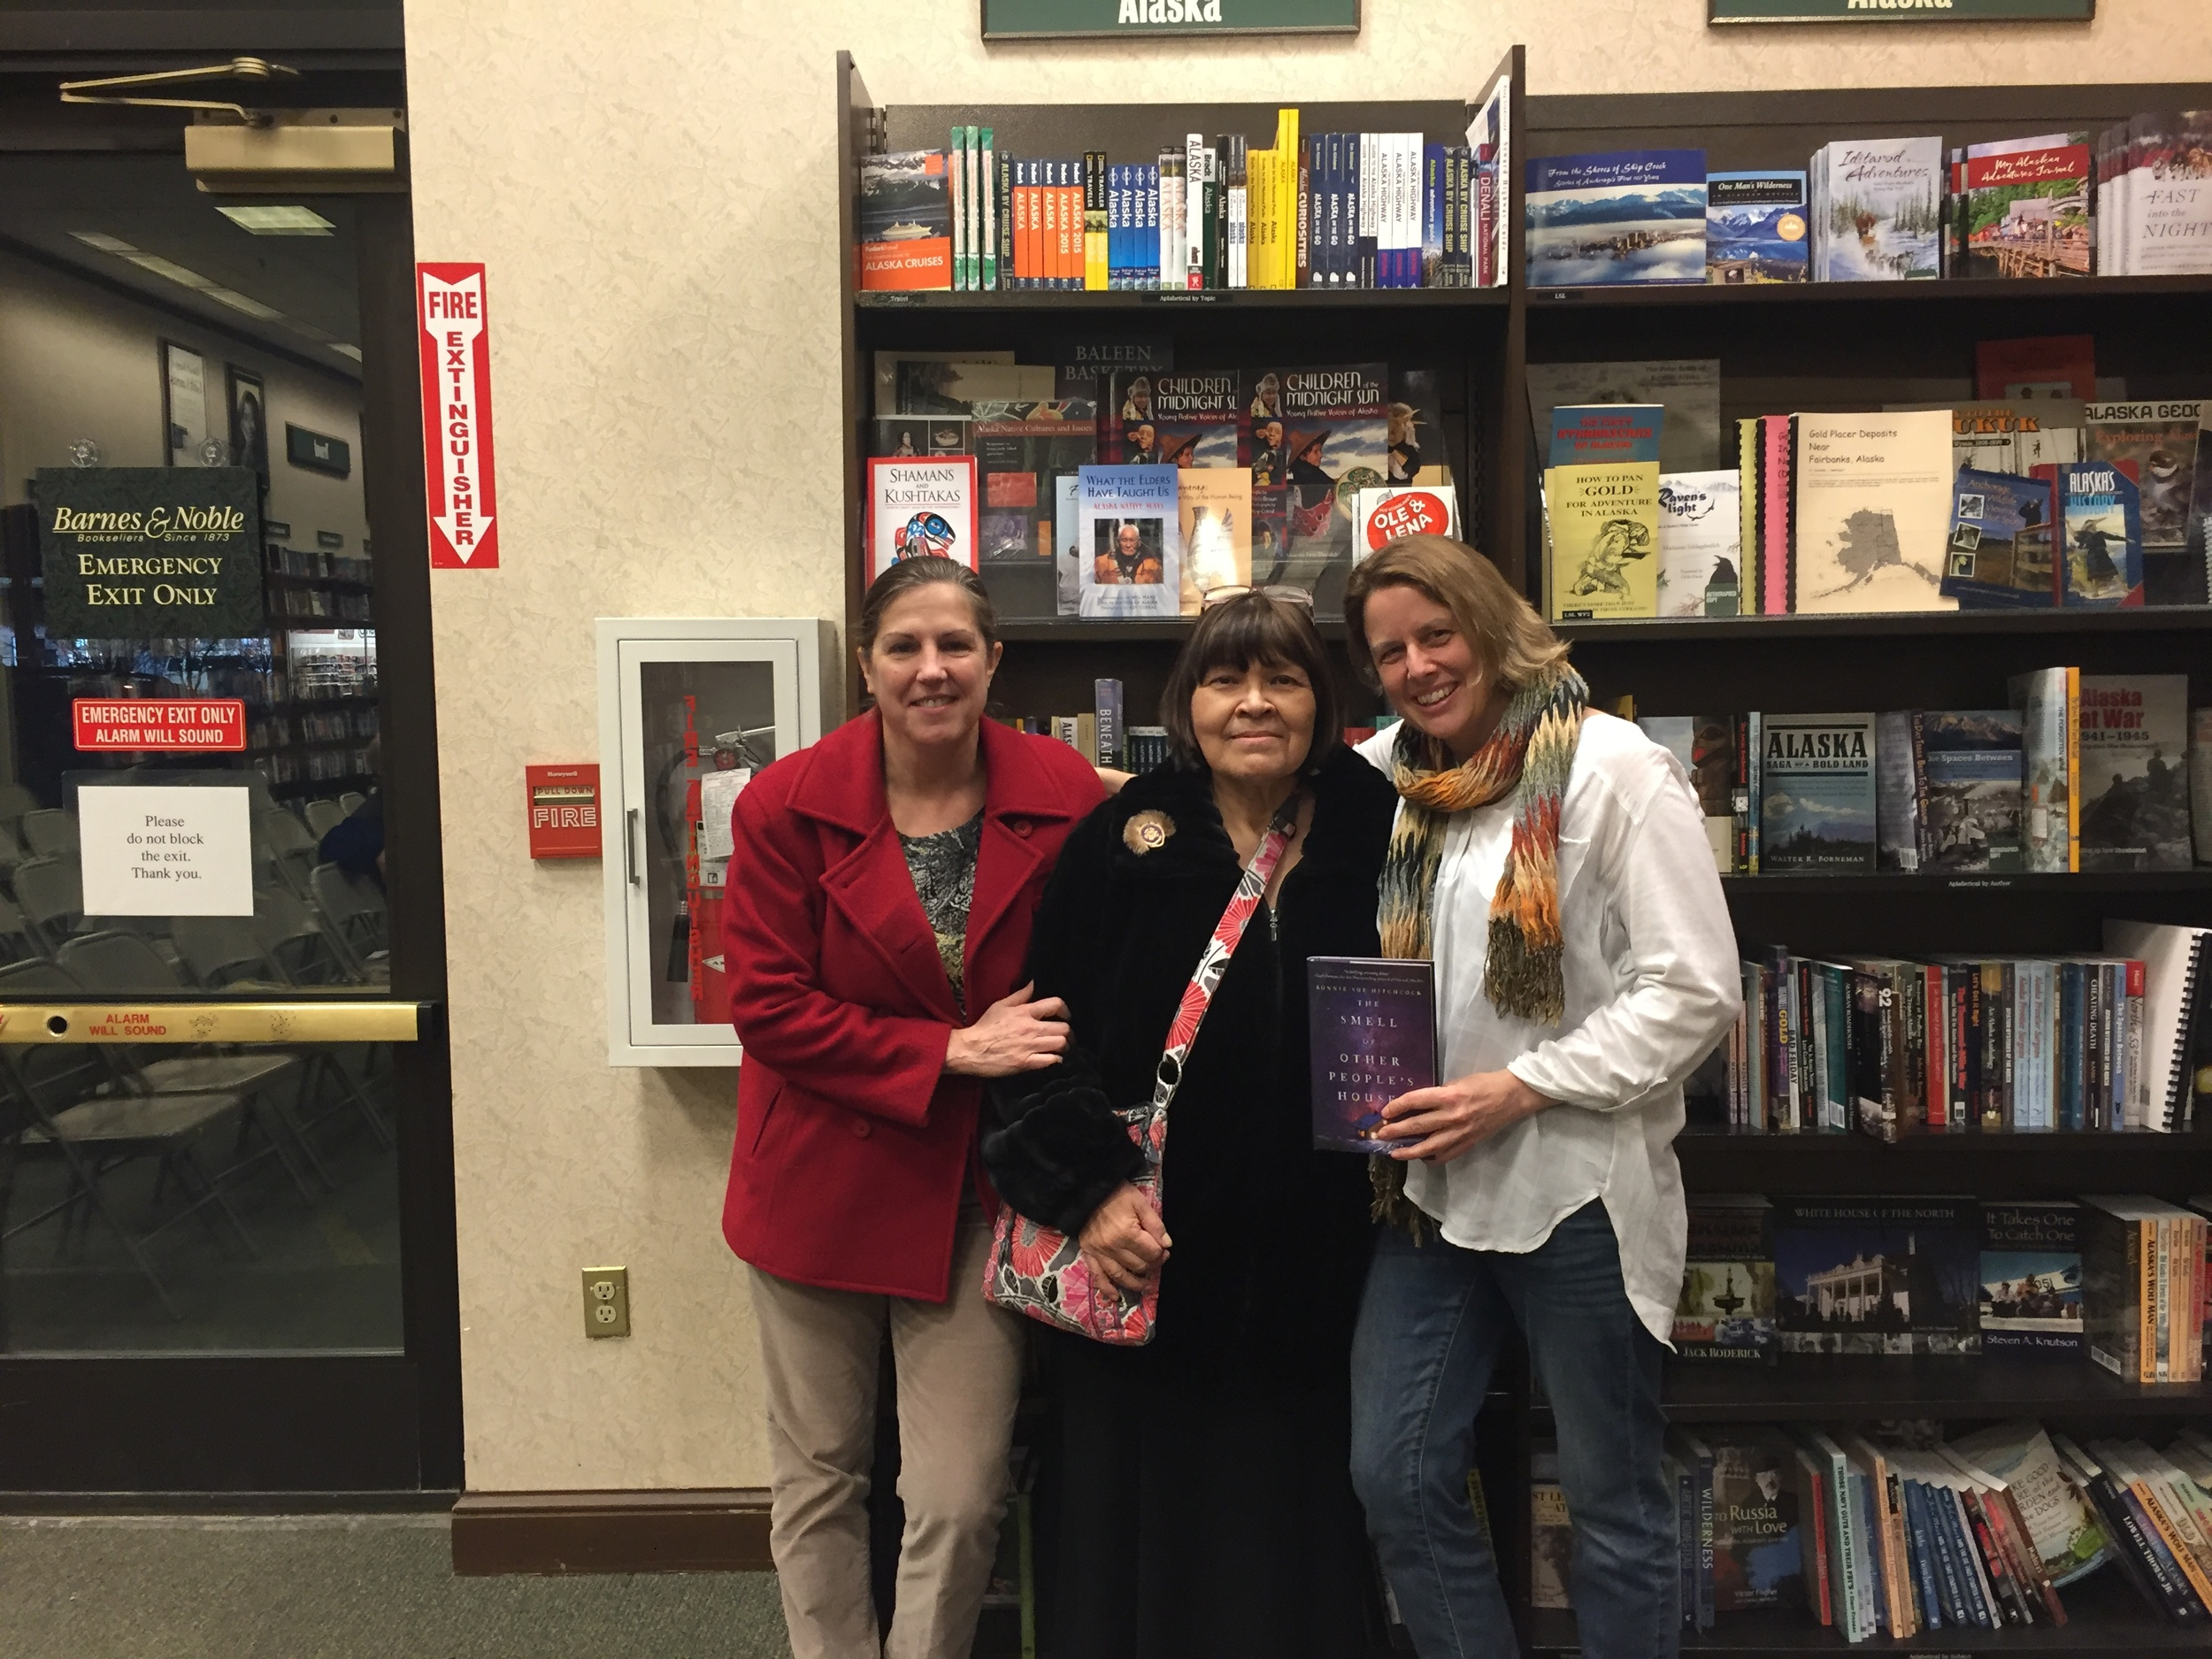 With Lori Townsend and Nellie Moore in the Alaska section at Barnes and Noble. Lori is the News Director at Alaska Public Media. (Photo: Barnes and Noble staff)